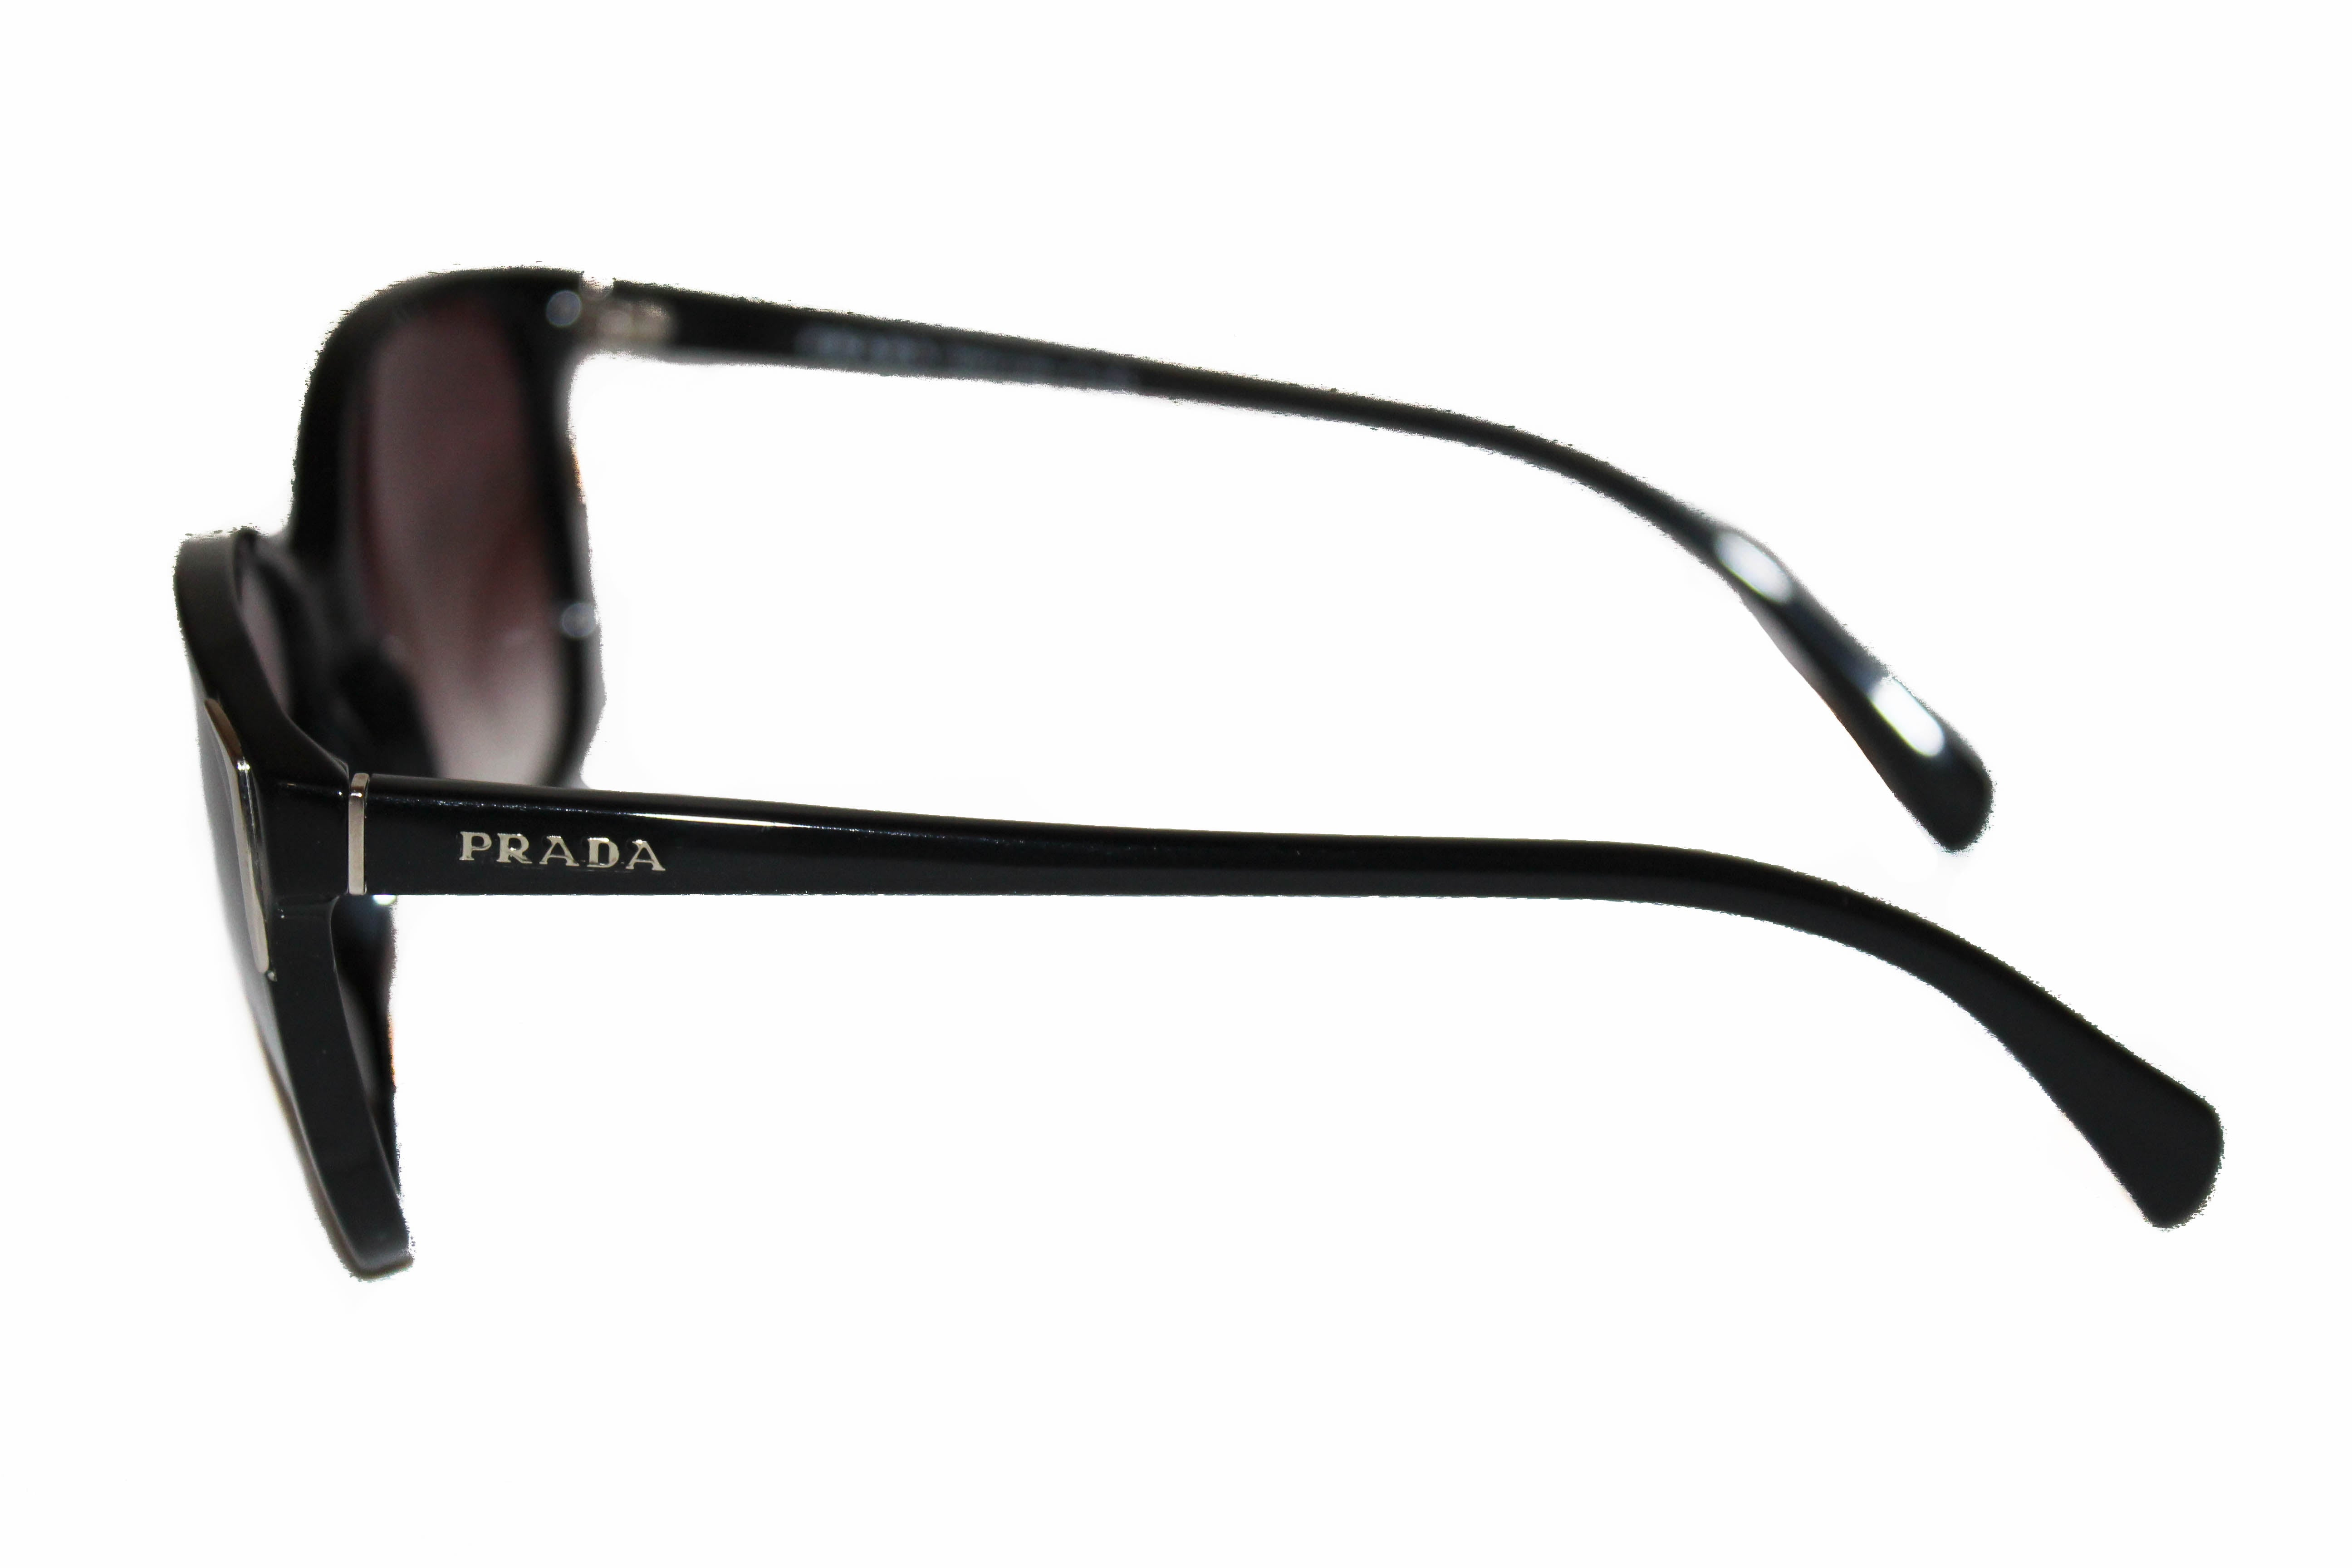 Authentic Prada Black Frame Gradient Arrow Sunglasses SPR01O